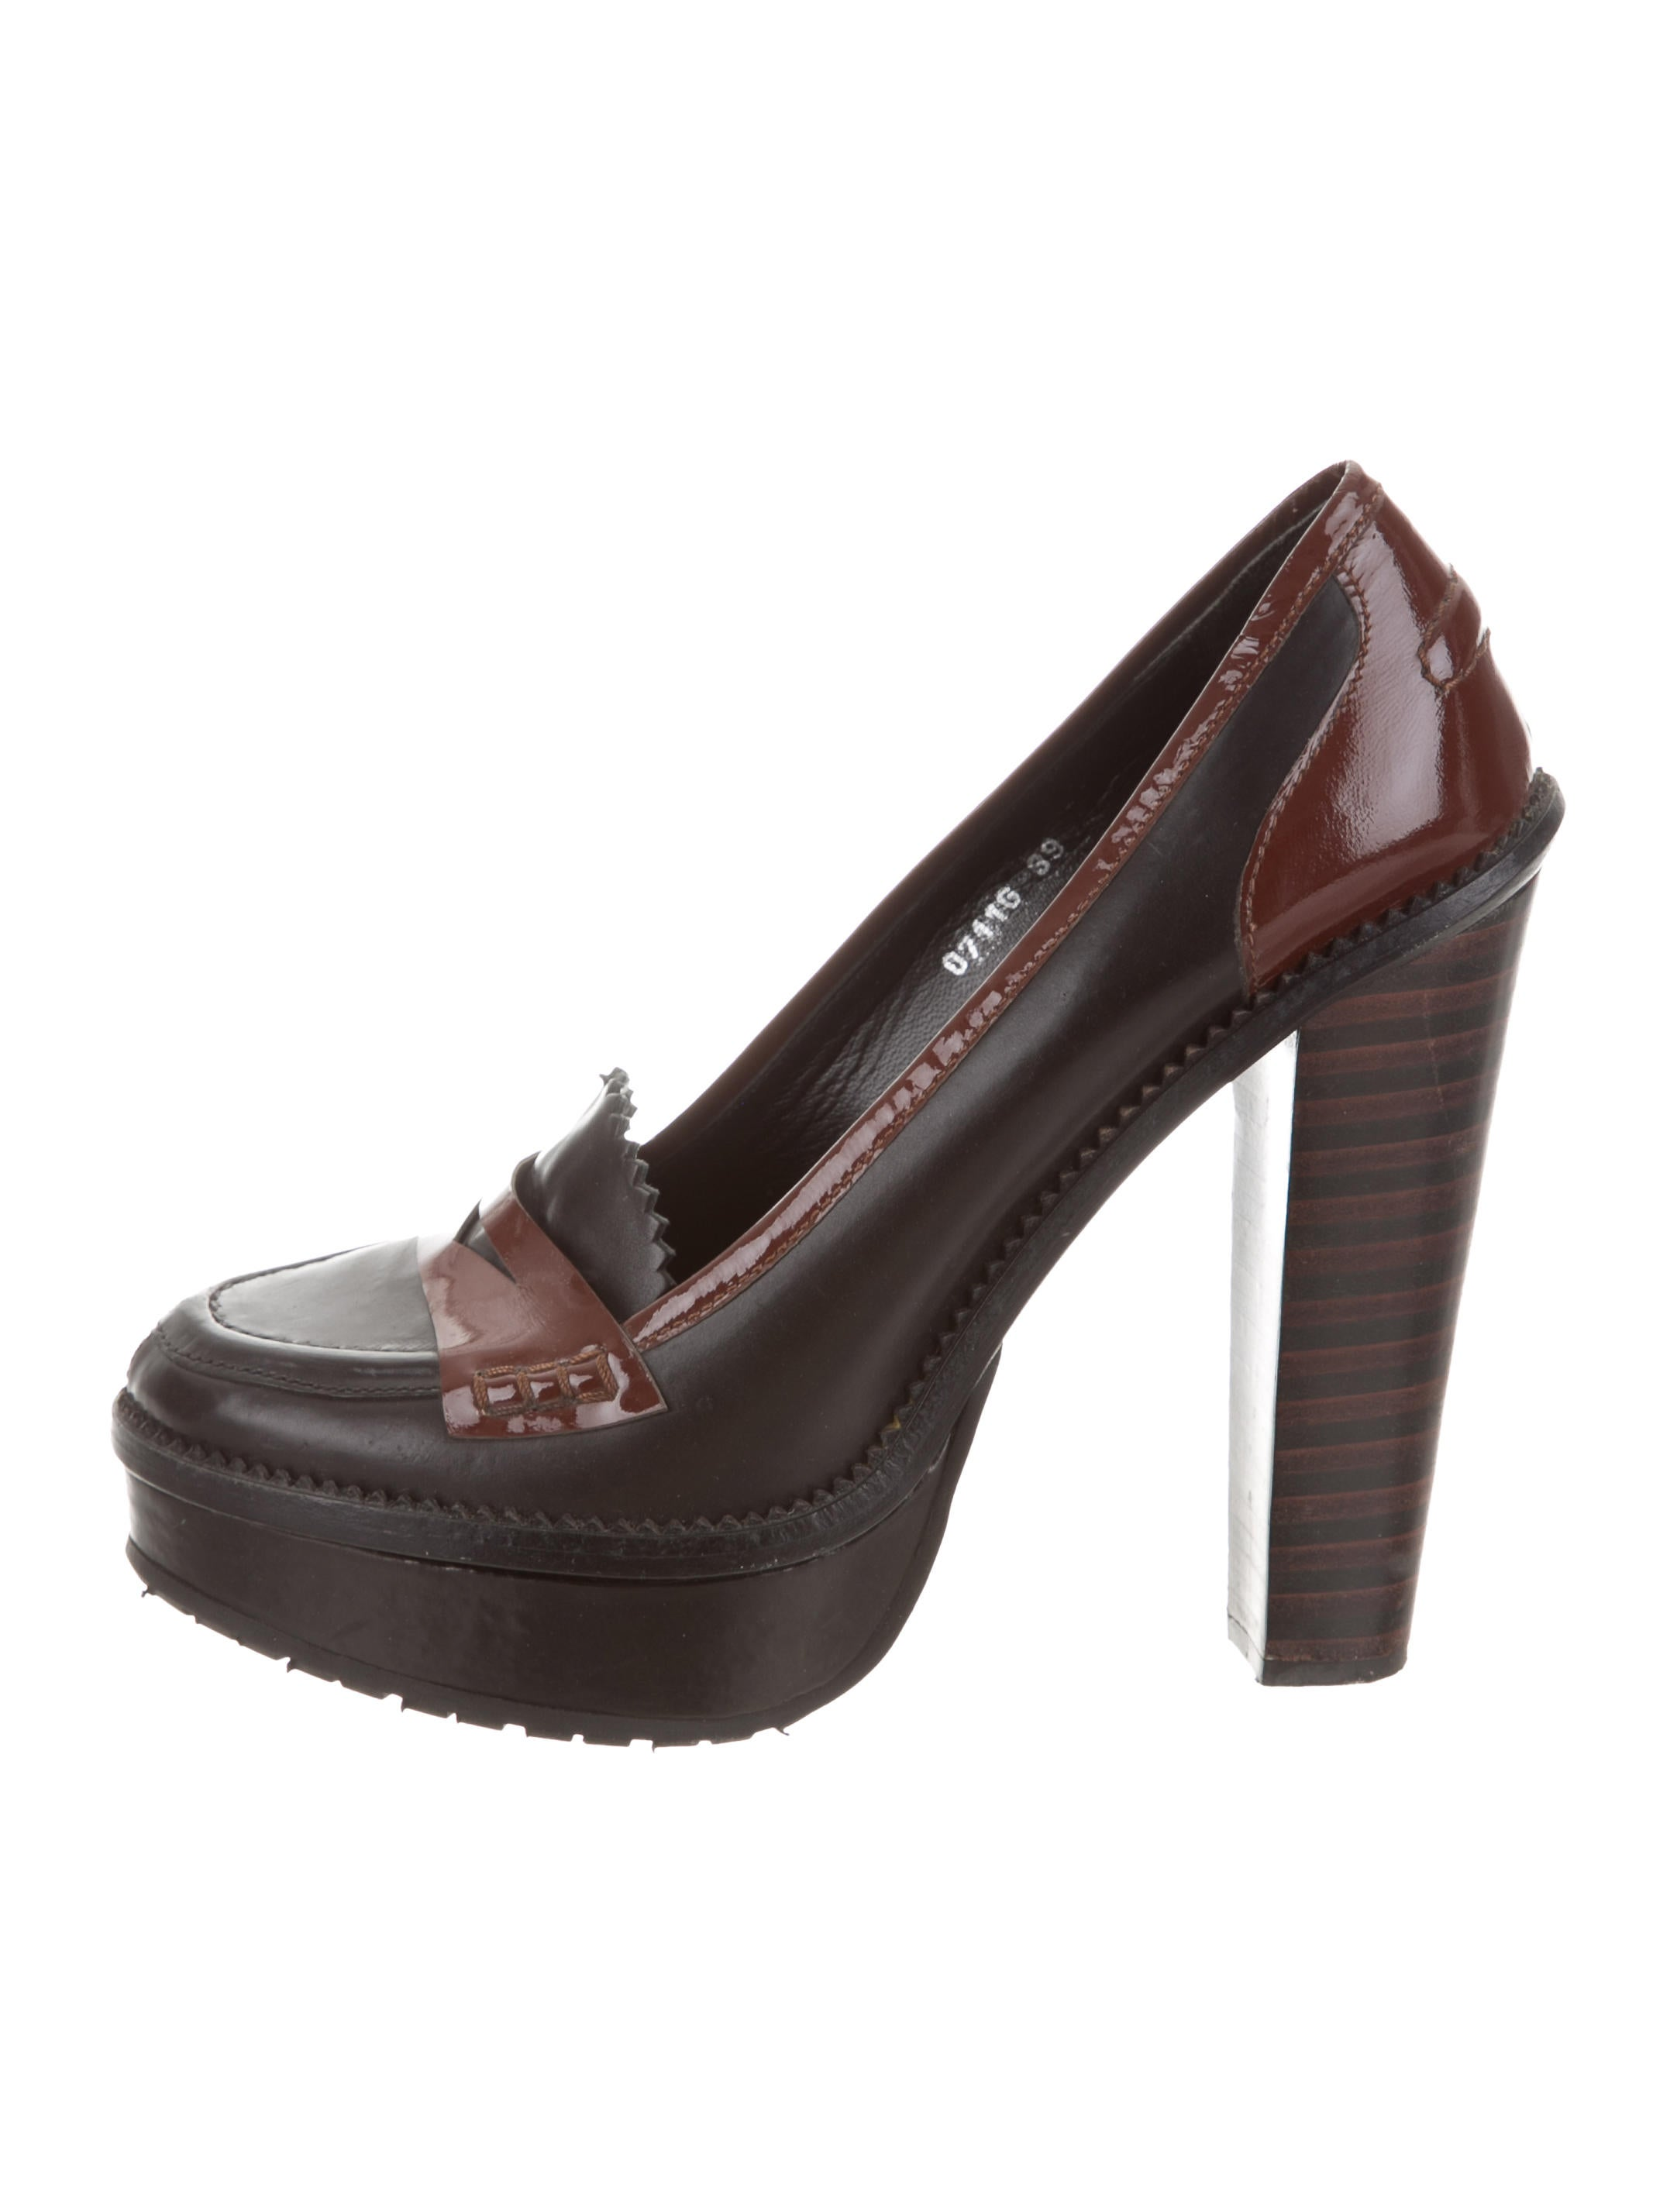 Opening Ceremony Leather Platform Pumps sale 2014 unisex buy cheap how much best cheap online discount outlet clearance sast lSUsEs0wwl